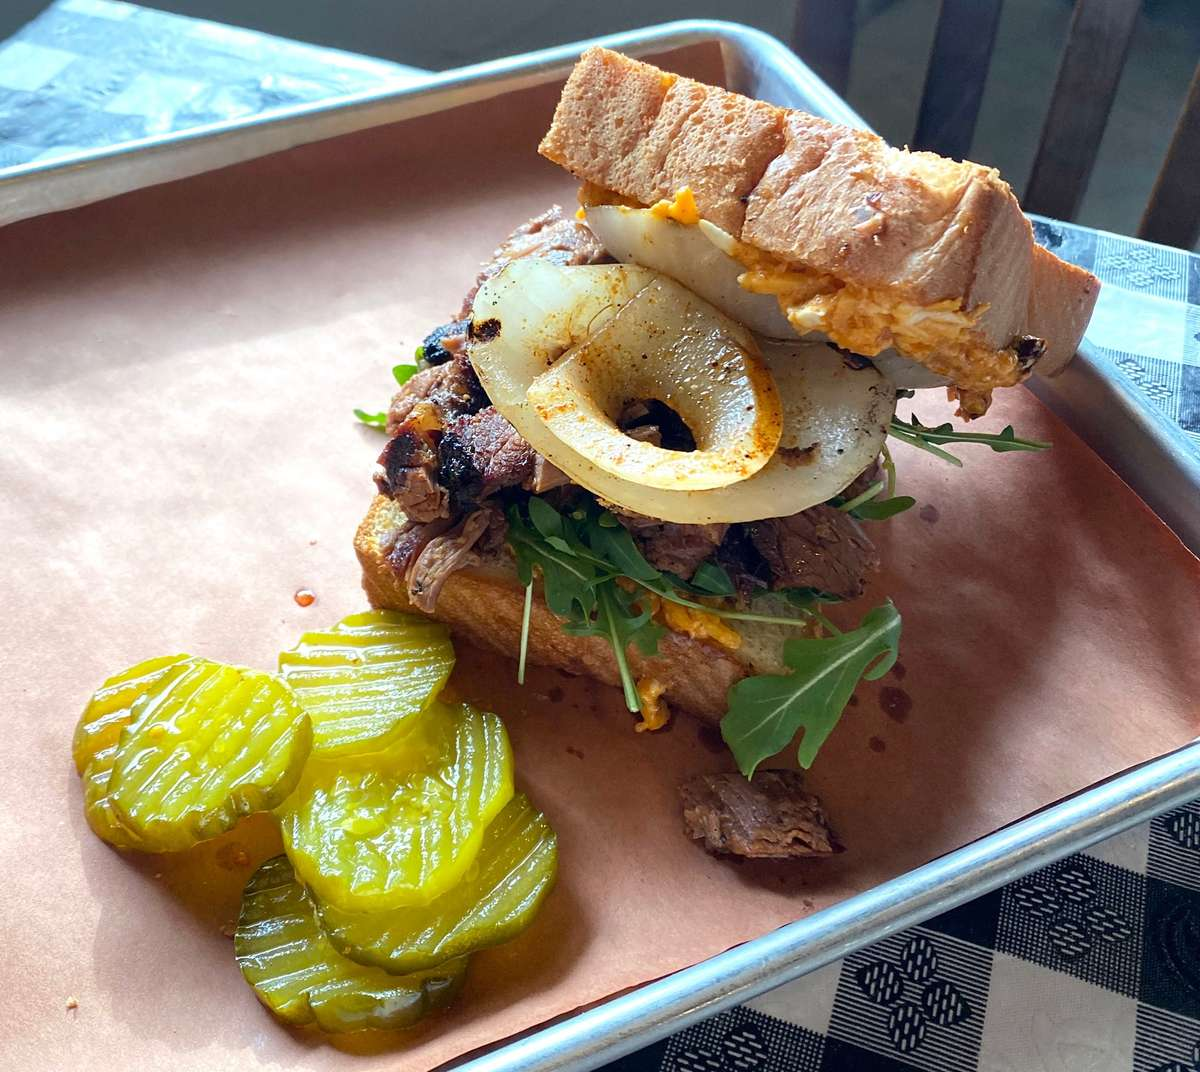 BBQ sandwich and pickles